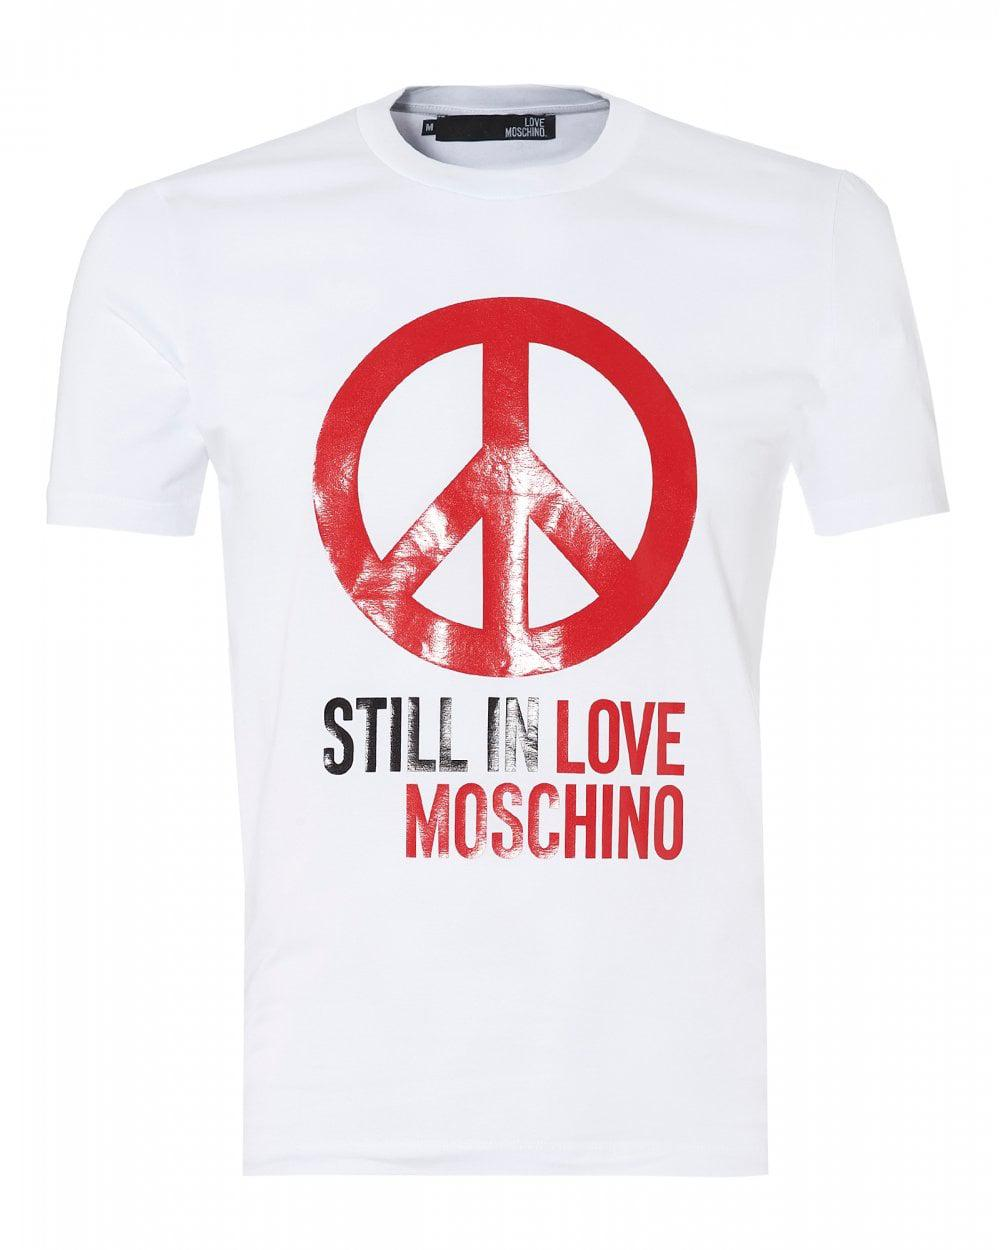 0399176df77 Lyst - Love Moschino Still In Love Peace T-shirt, White Cotton Tee ...